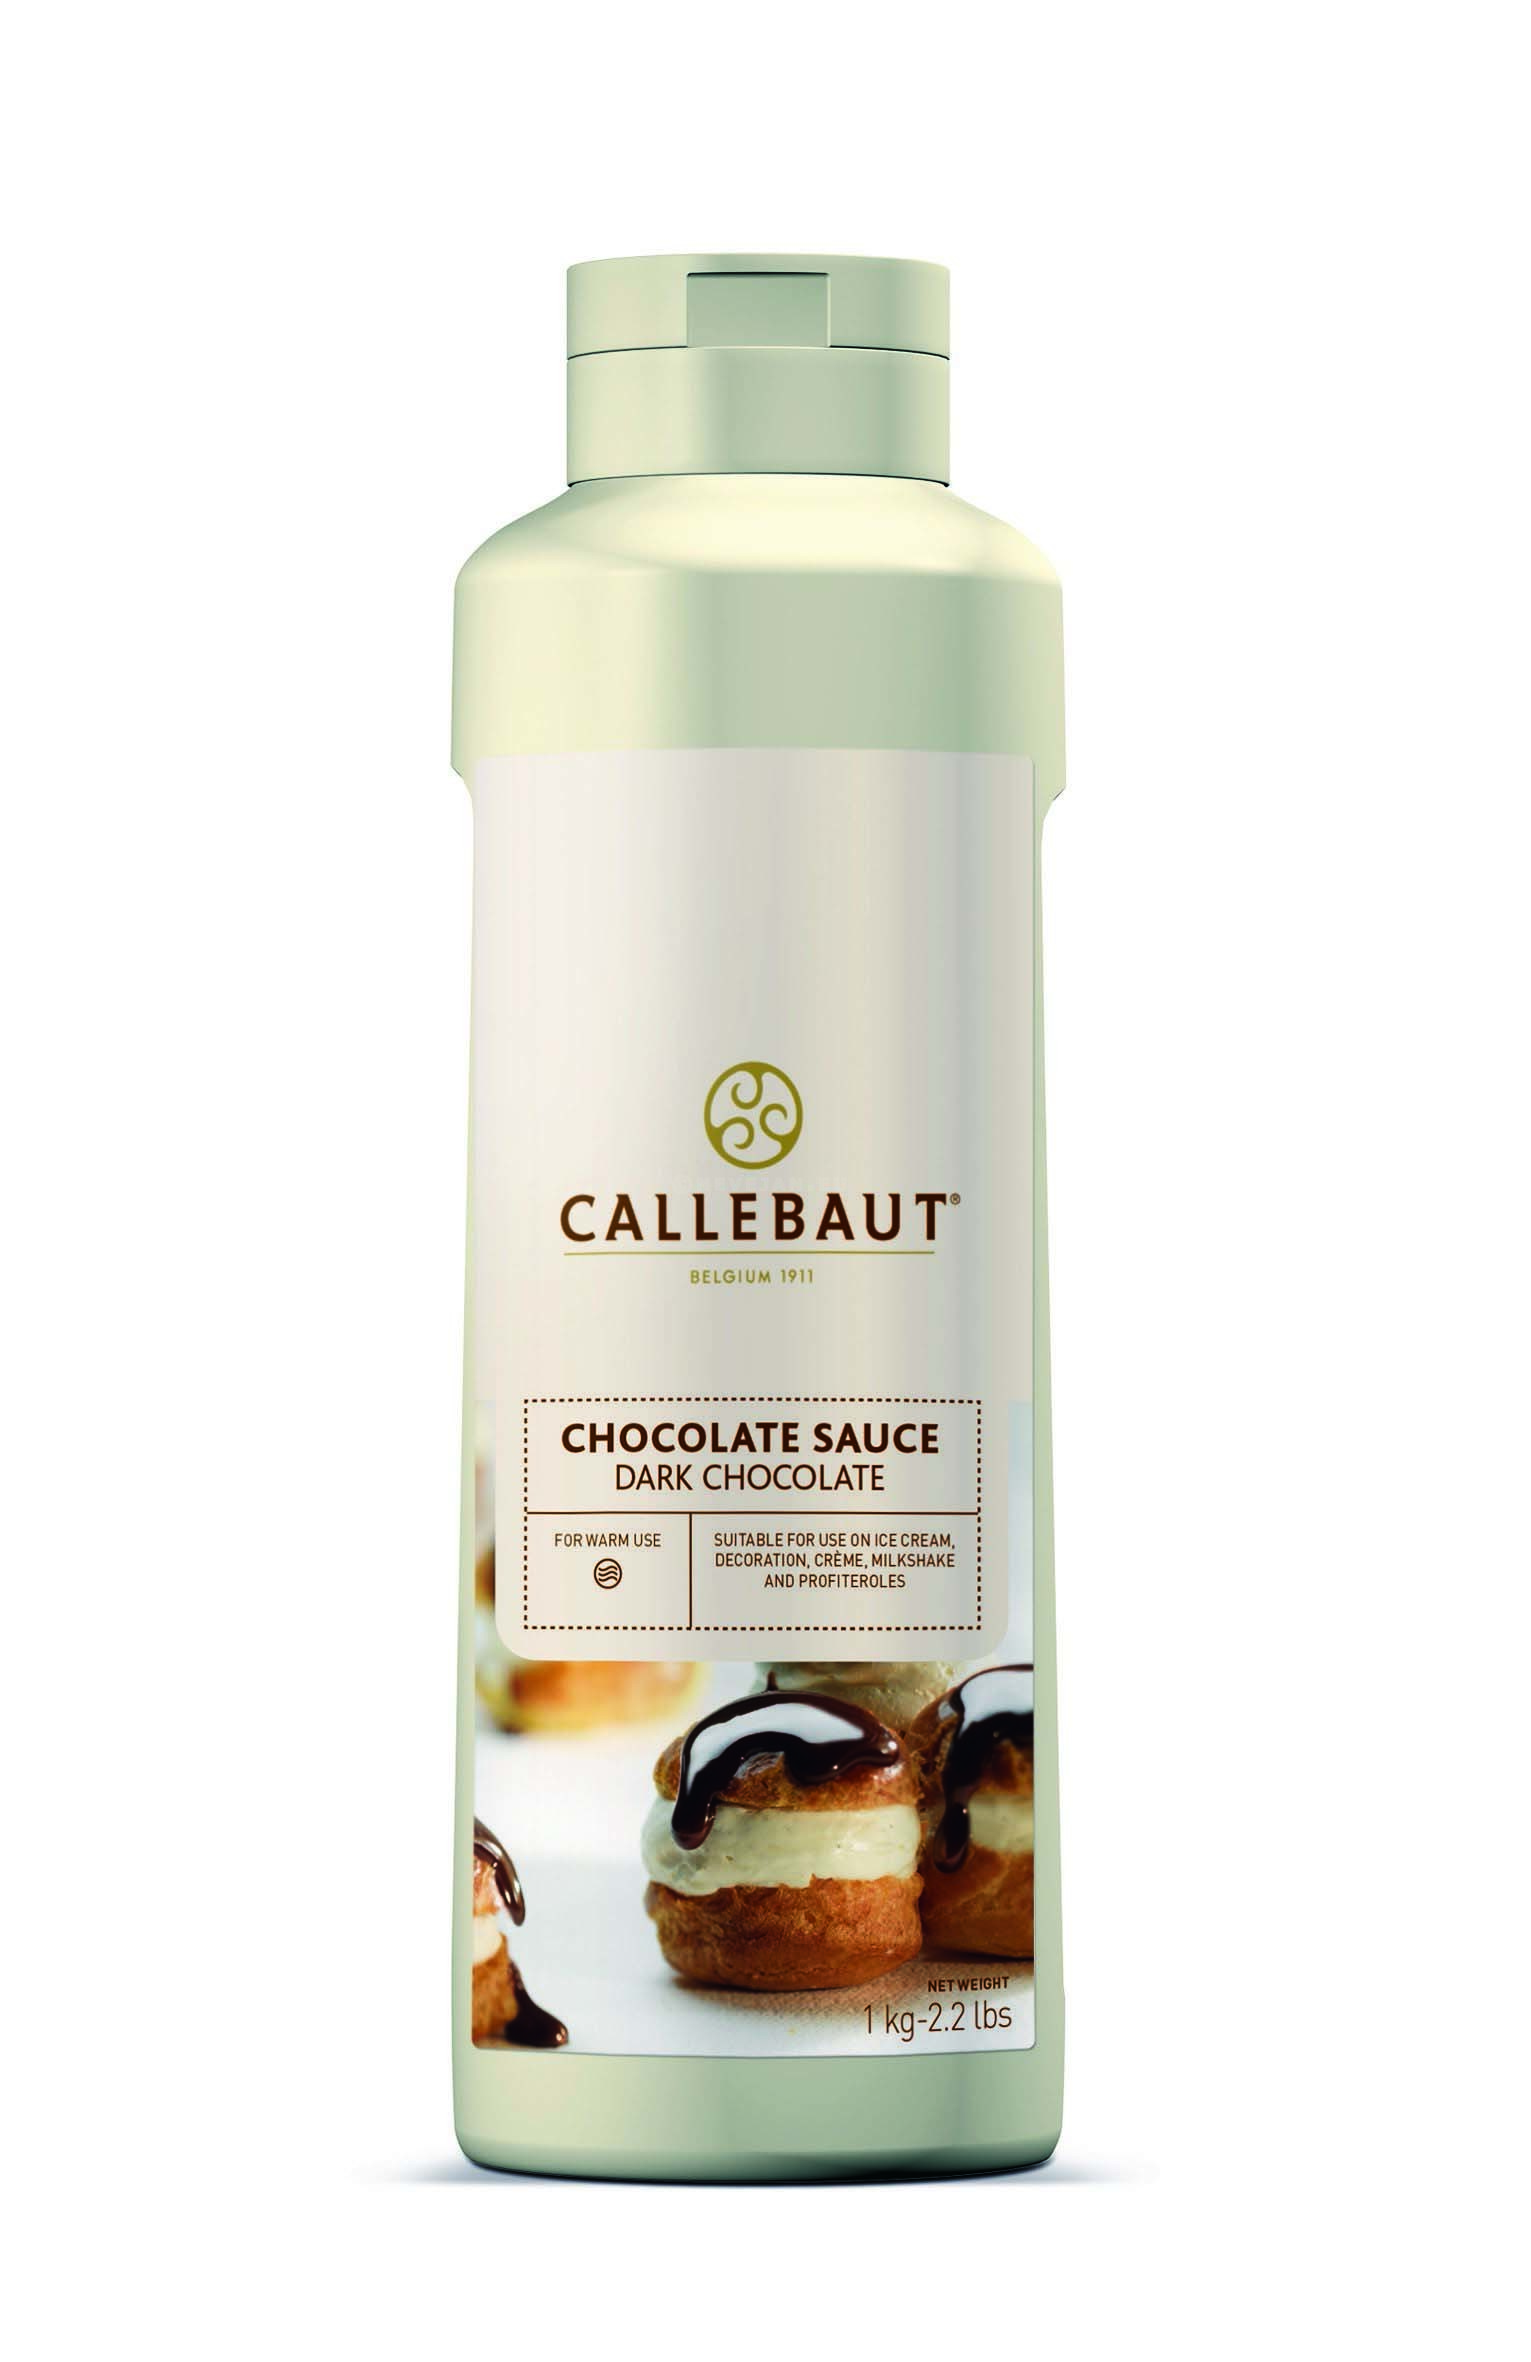 Topping donkere chocolade 1L Callebaut knijpfles